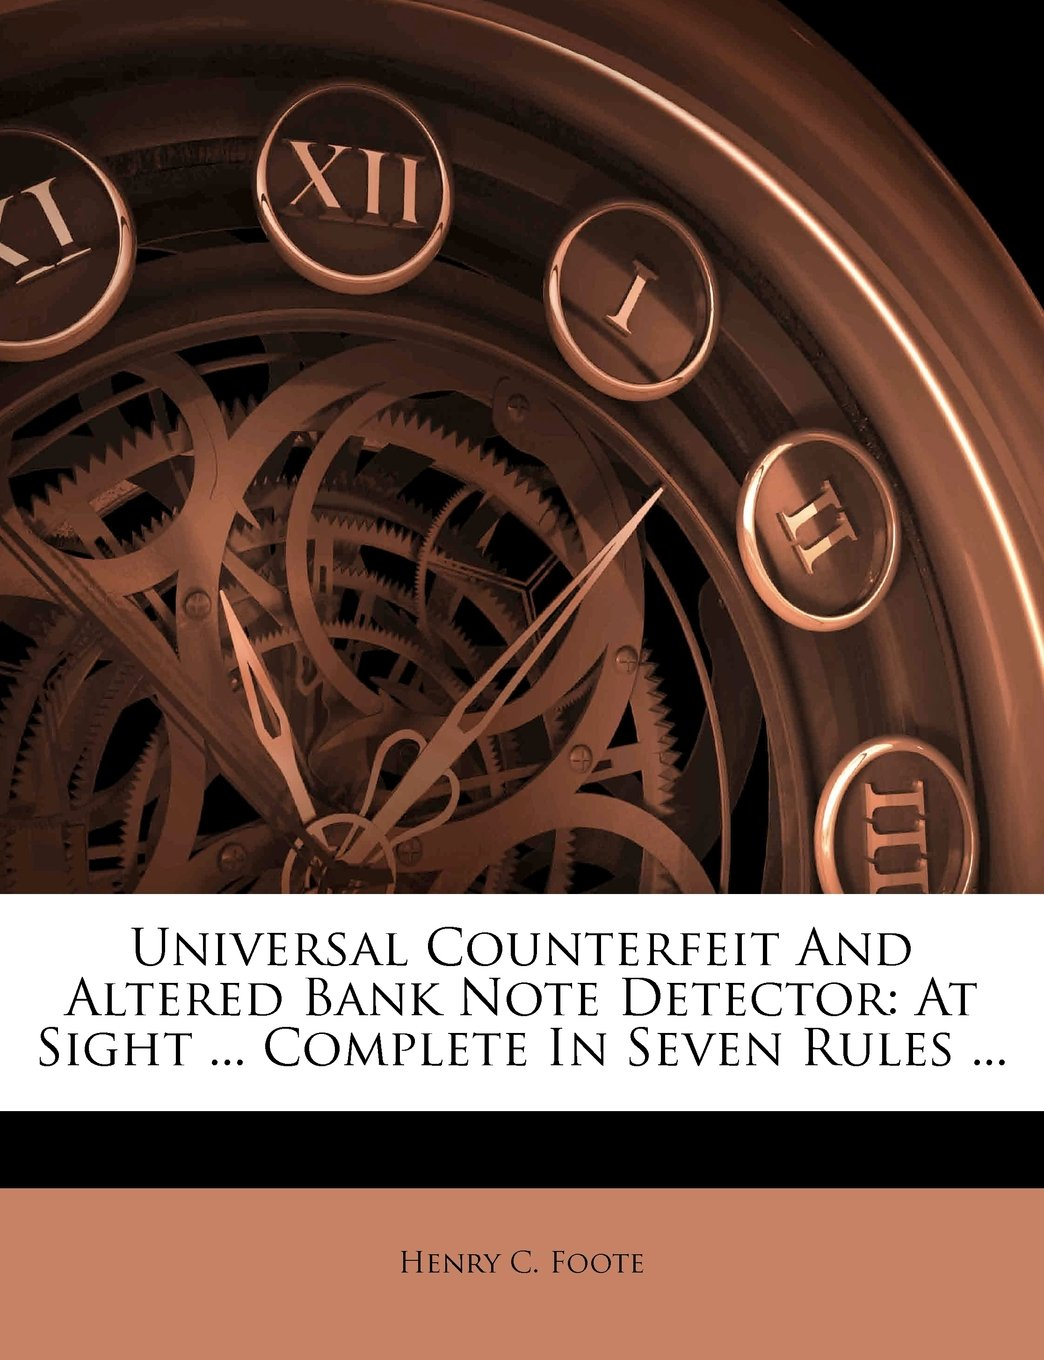 Universal Counterfeit And Altered Bank Note Detector: At Sight ... Complete In Seven Rules ...: Henry C. Foote: 9781286613023: Amazon.com: Books